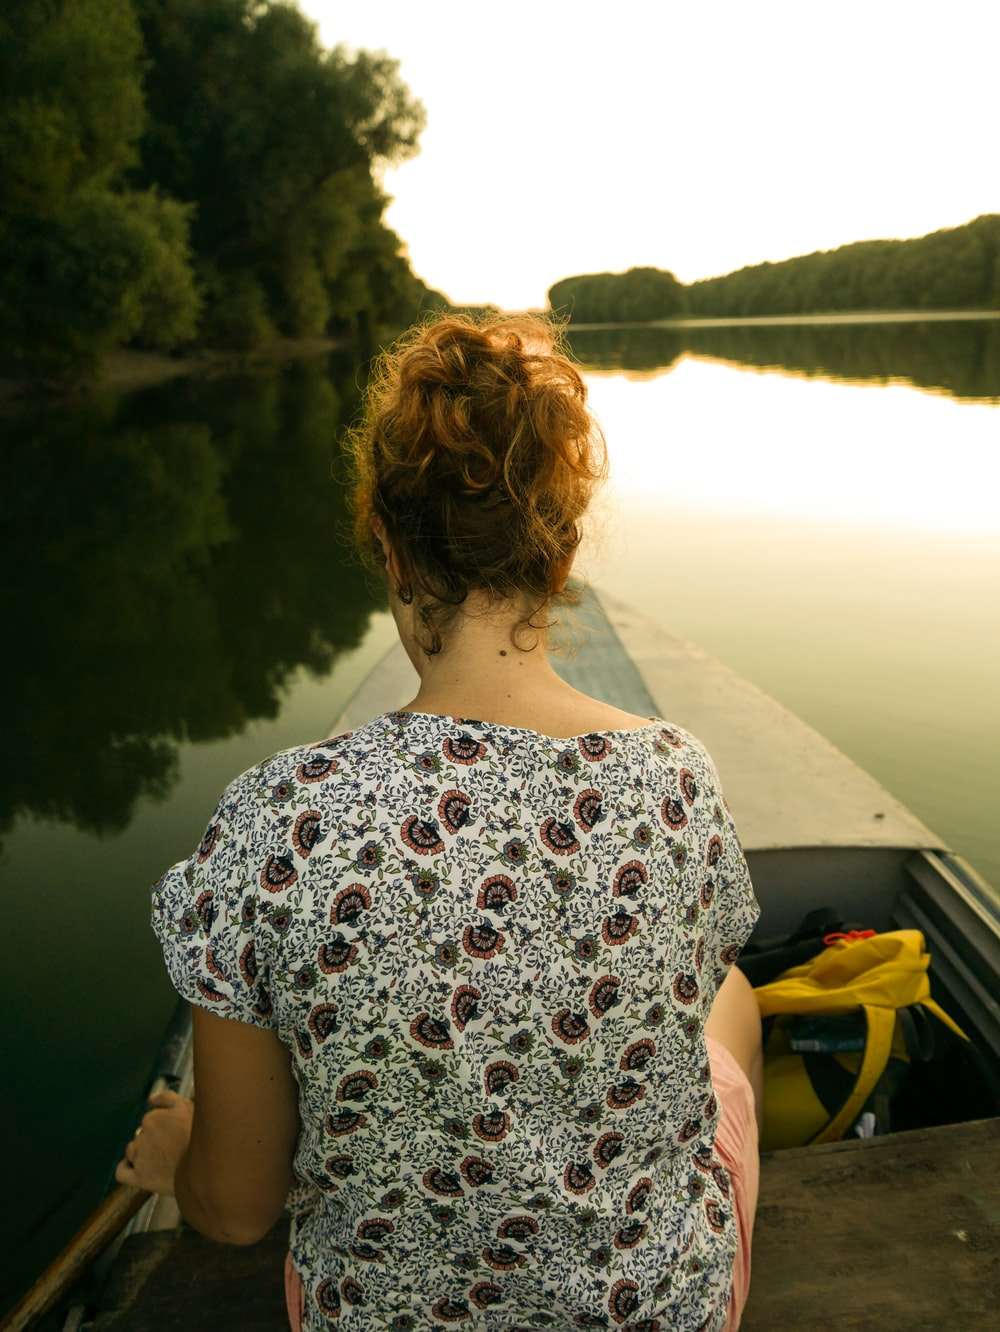 woman riding on boat